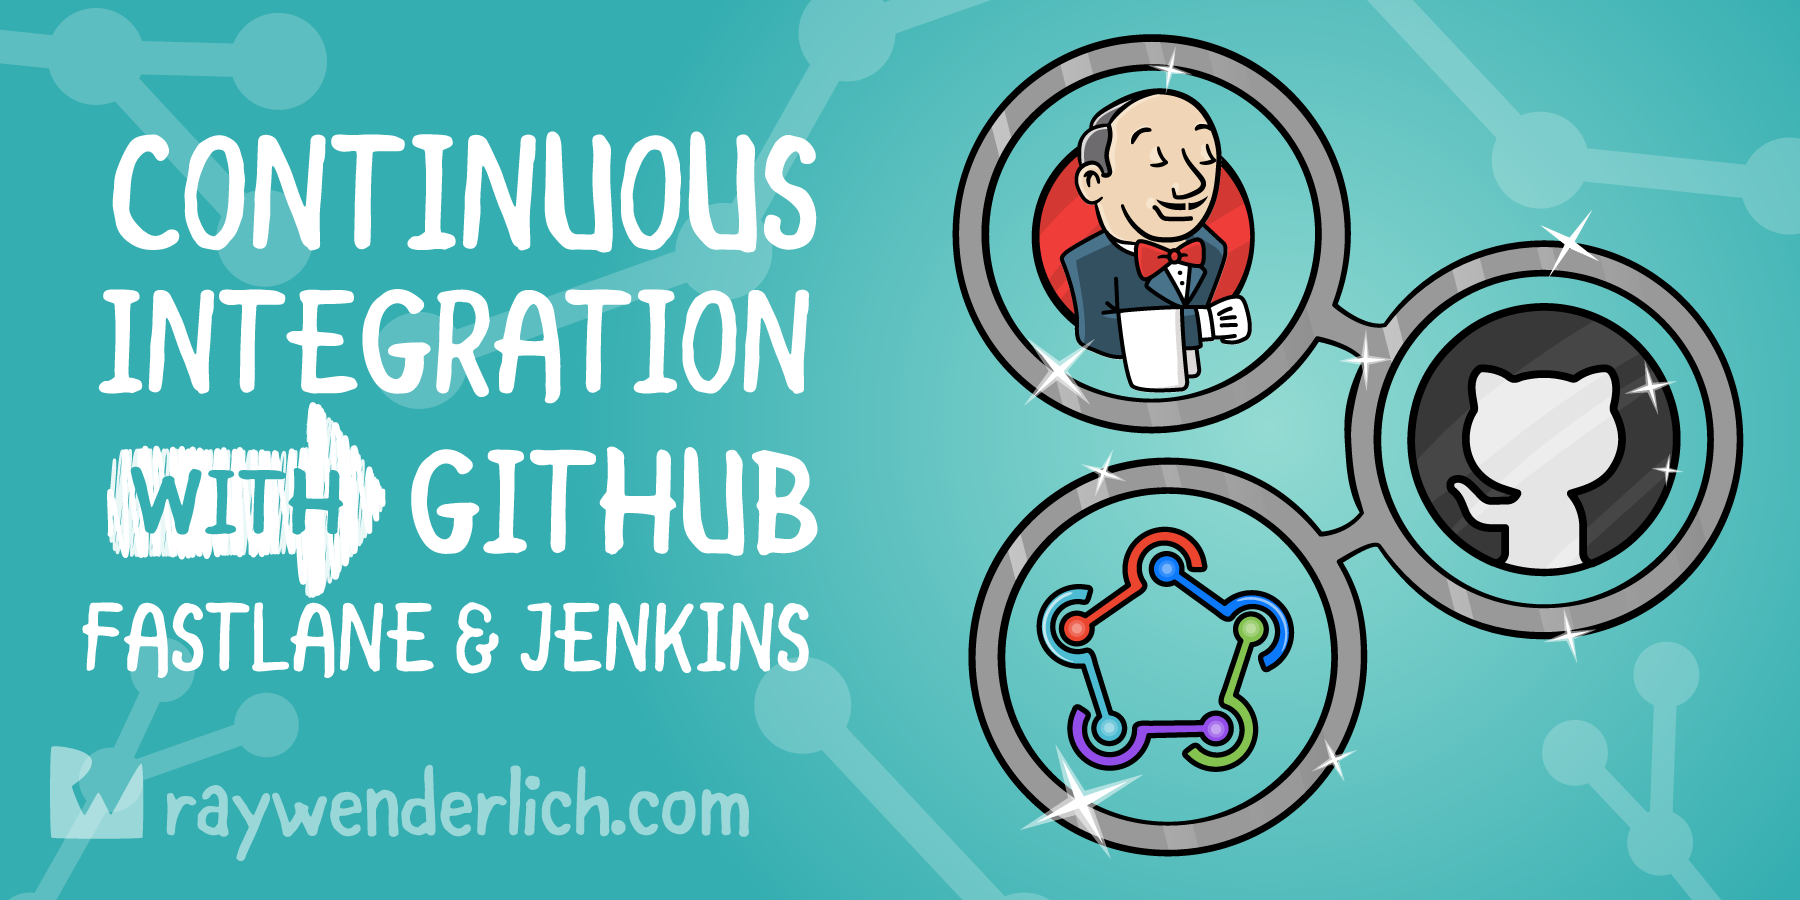 QnA VBage Continuous Integration With GitHub, Fastlane & Jenkins [FREE]